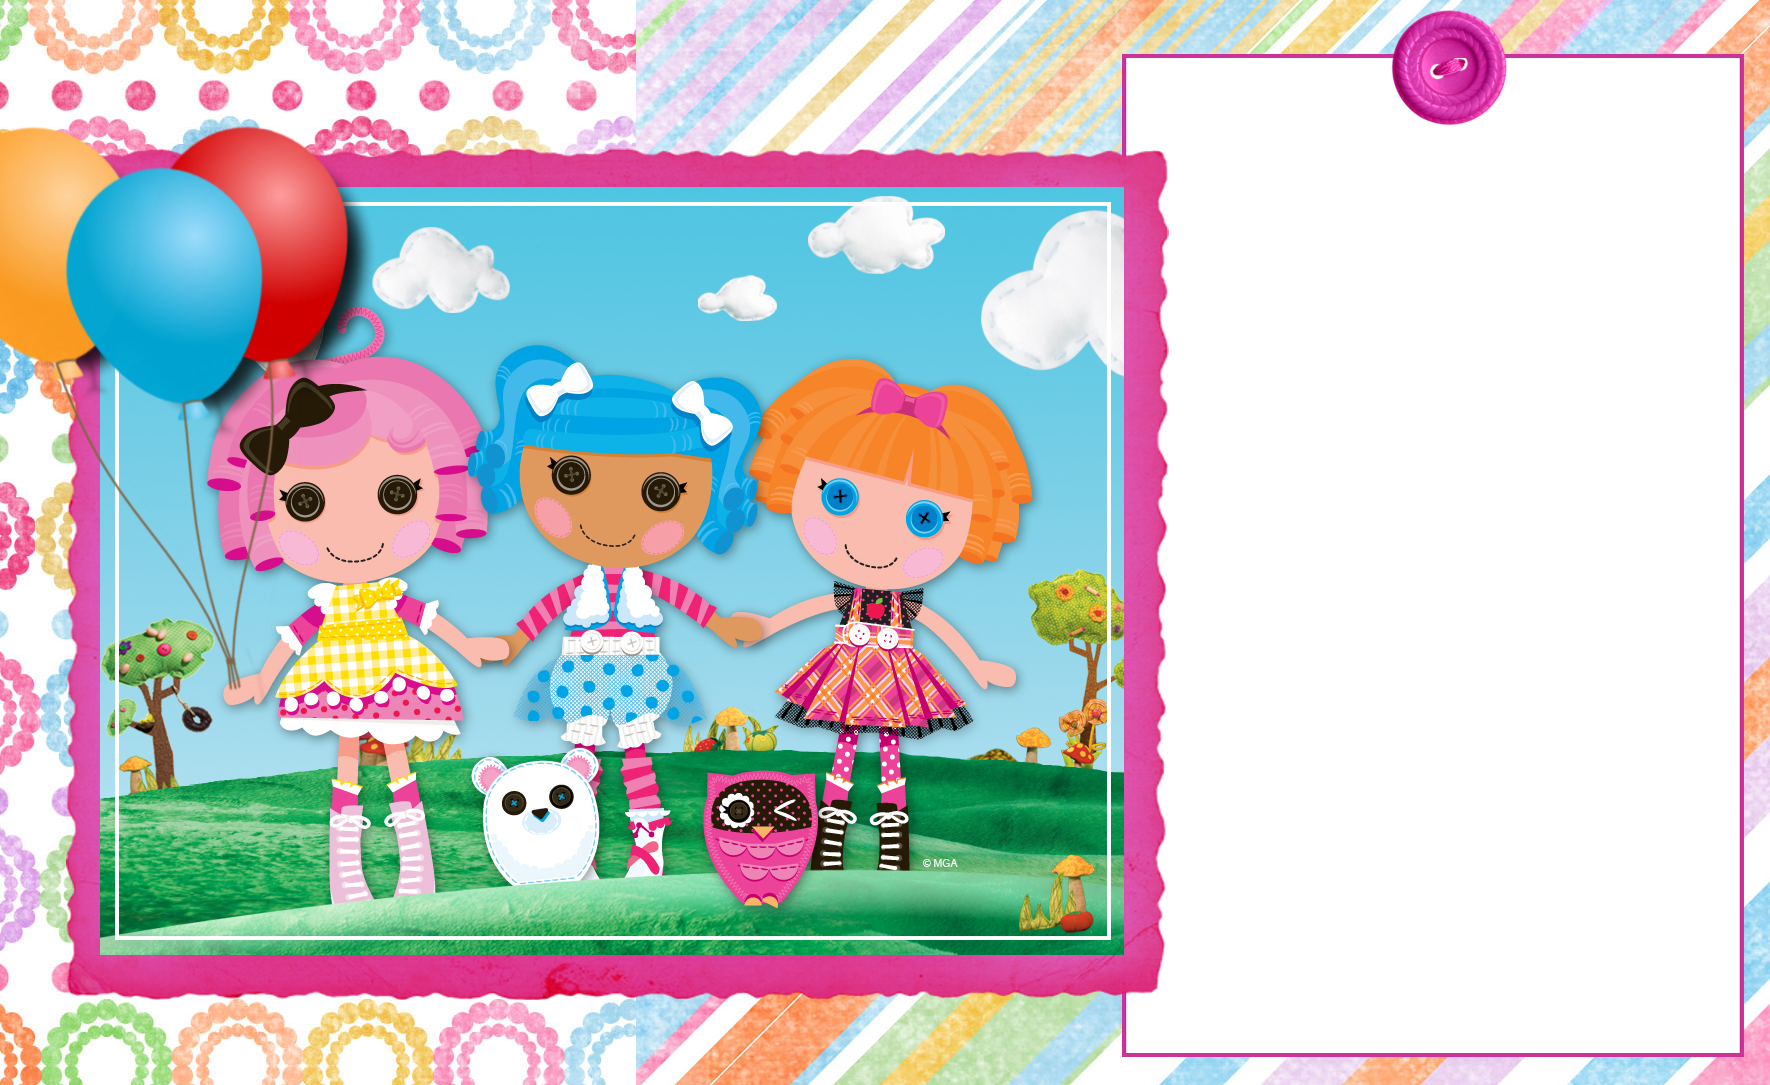 FREE CUSTOMIZABLE INVITATION FOR LALALOOPSY PARTY! glad if you will ...